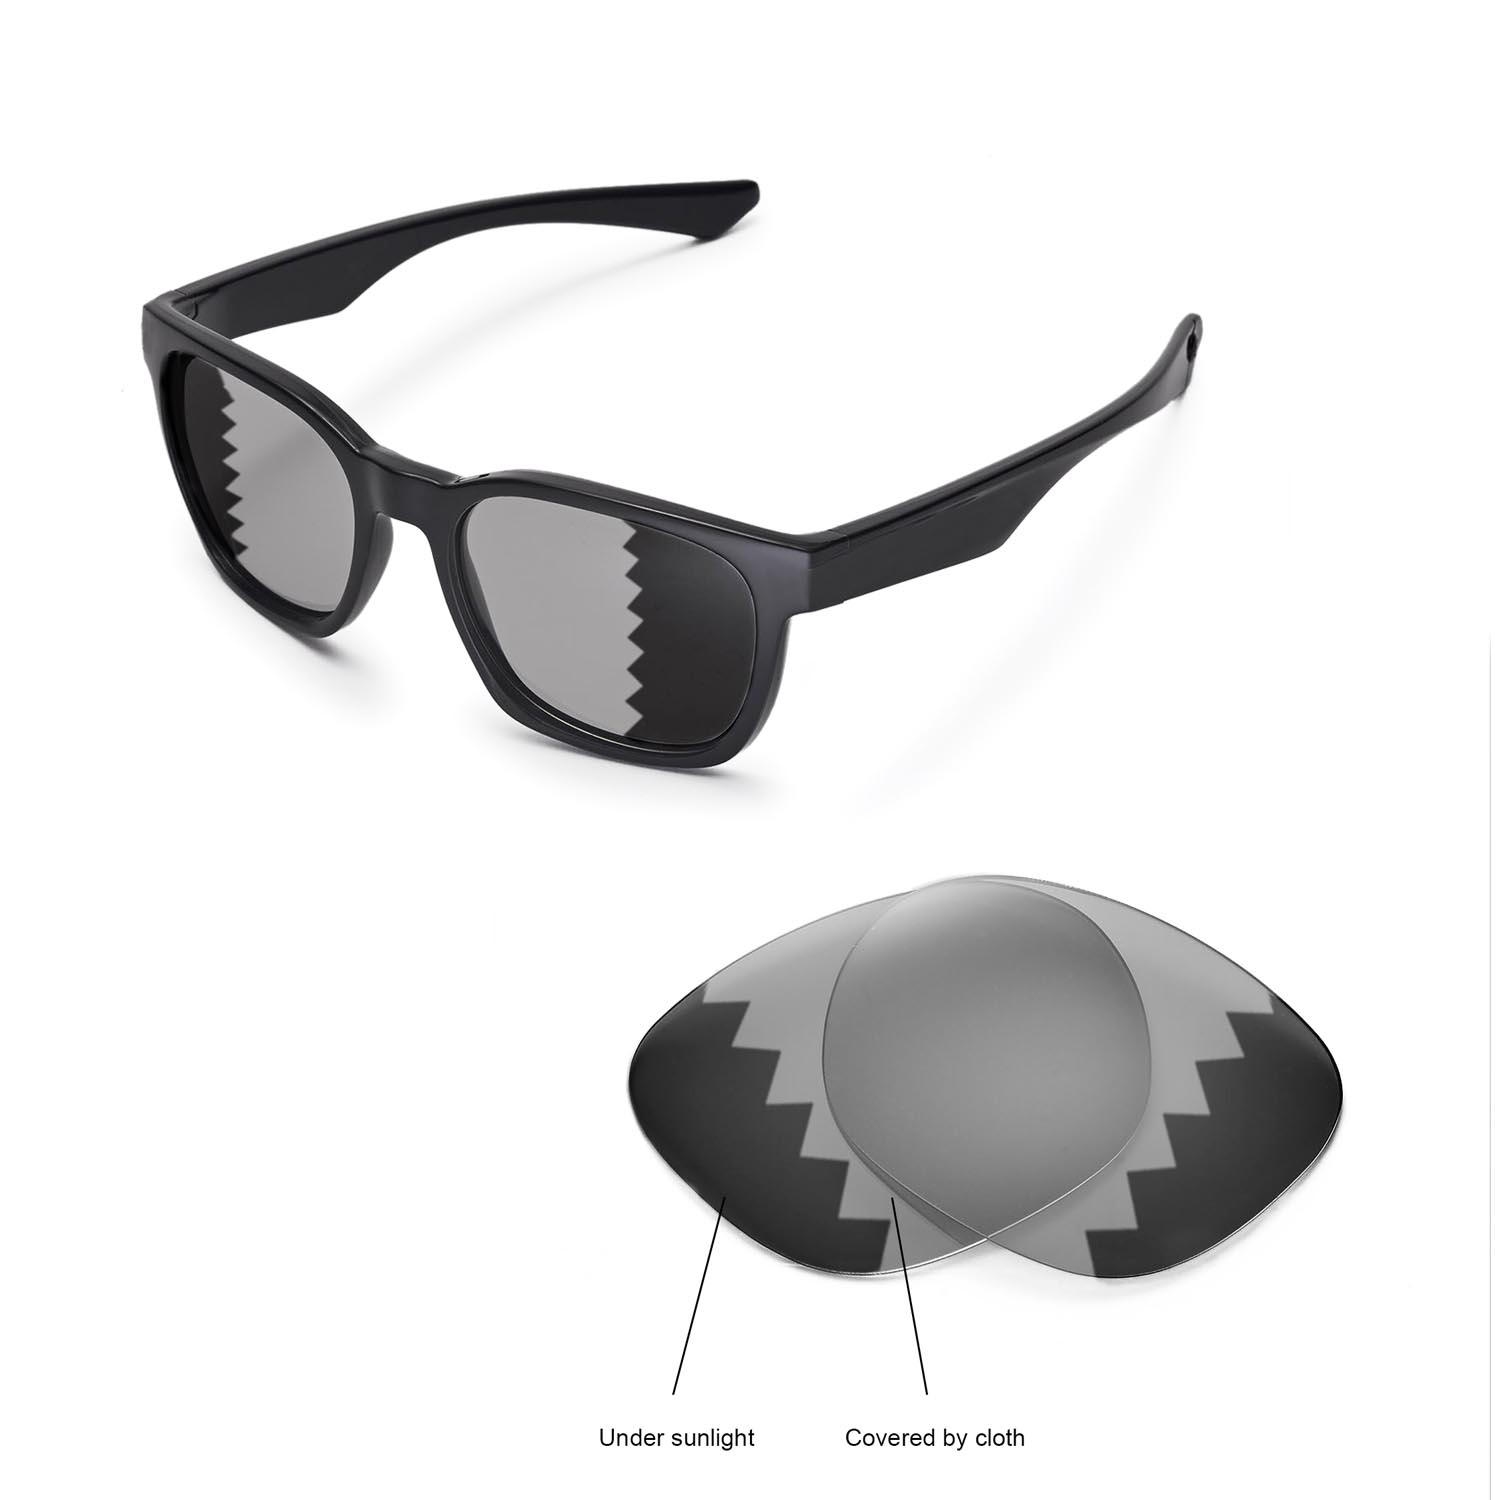 dbfdf187bf Details about New WL Polarized Transition Replacement Lenses 4 Oakley  Garage Rock Sunglasses